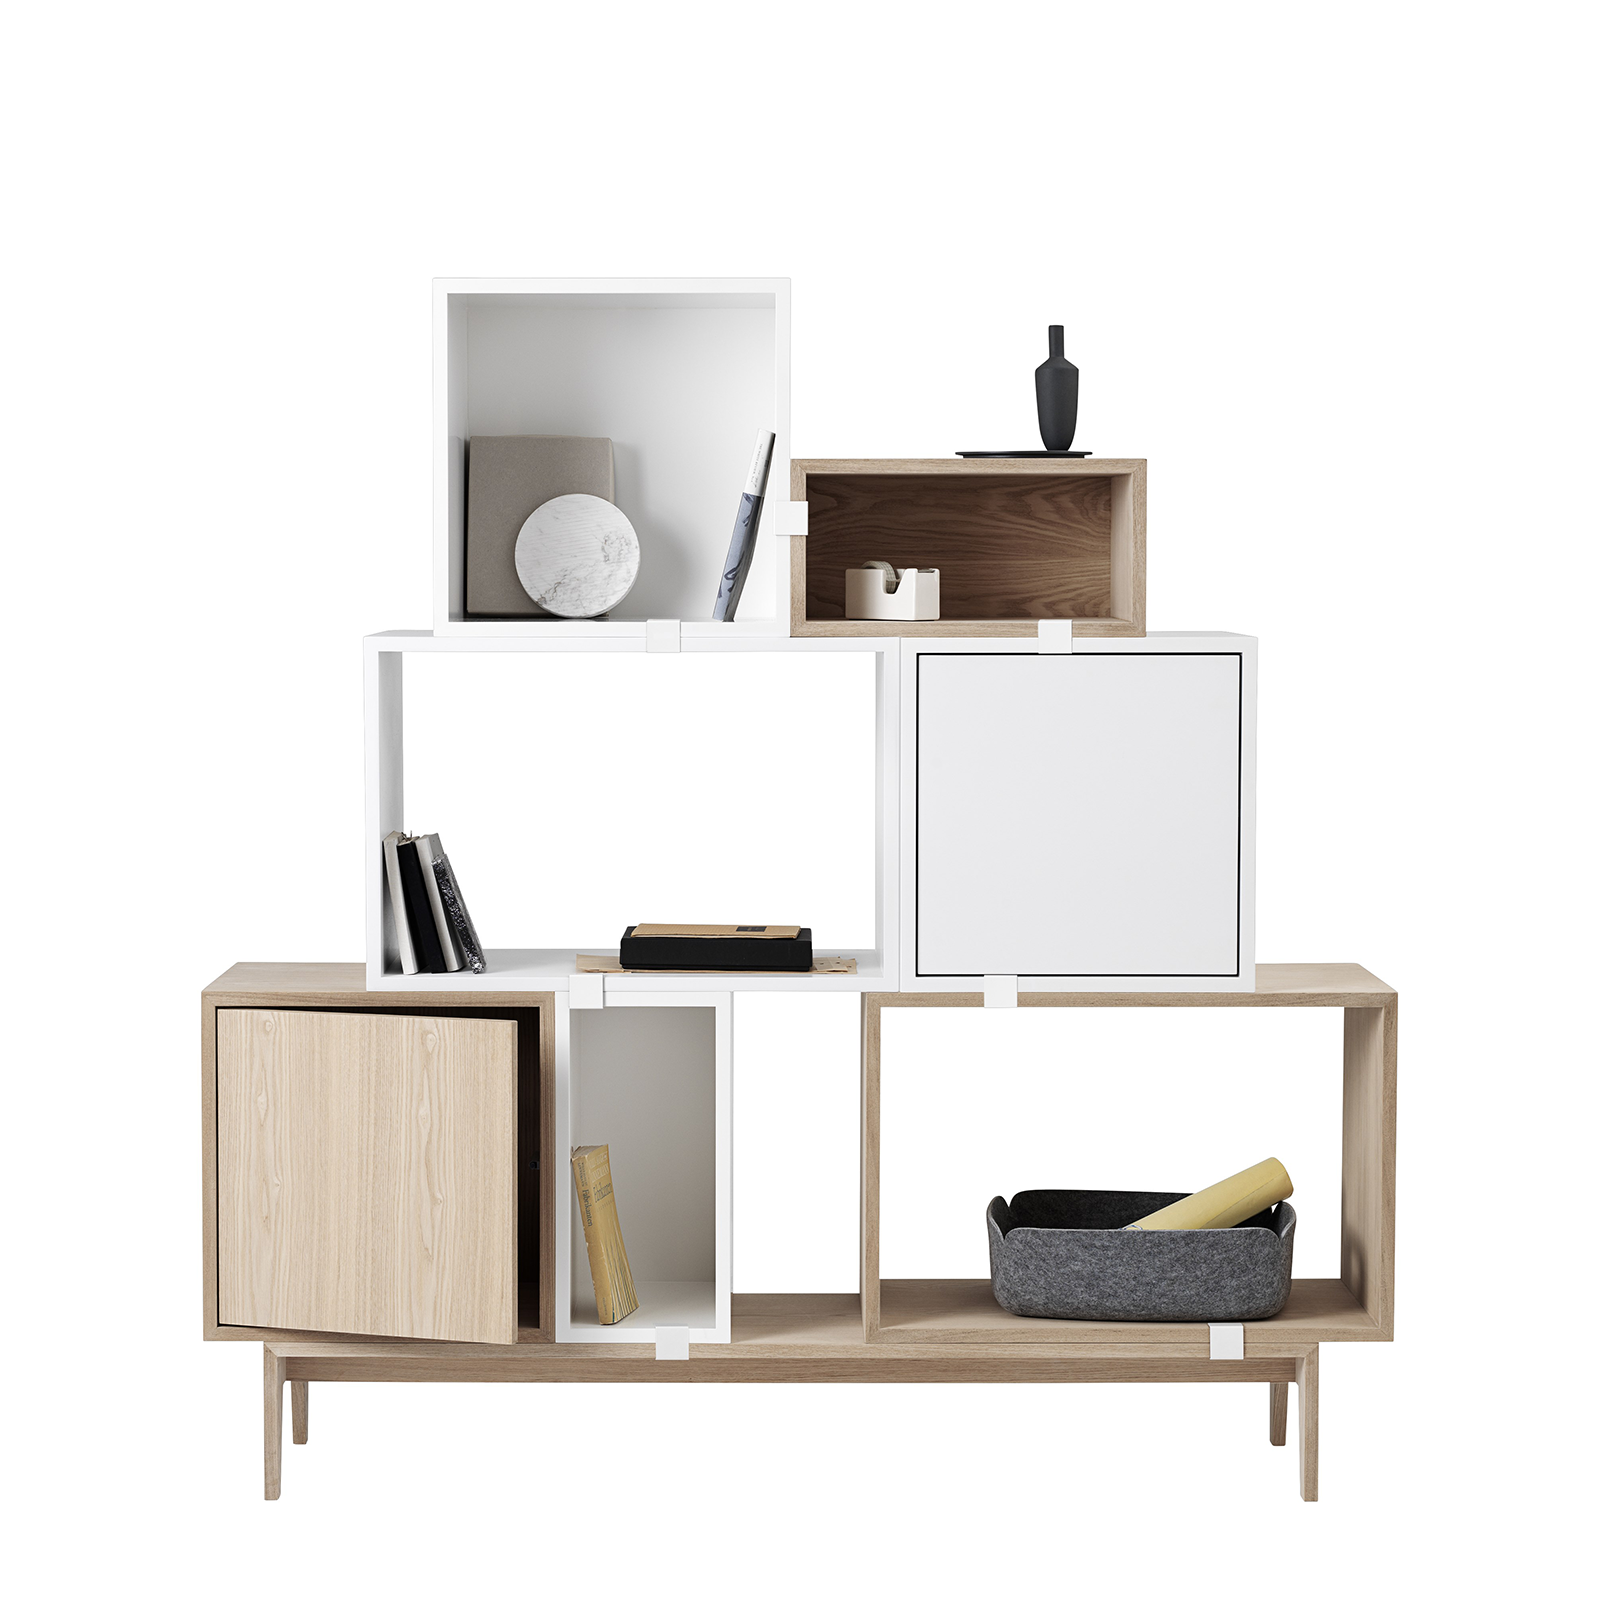 Muuto Stacked Storage System 2.0 Podium 131x35cm 木質方格系列 標準型 壁面收納櫃 底座配件